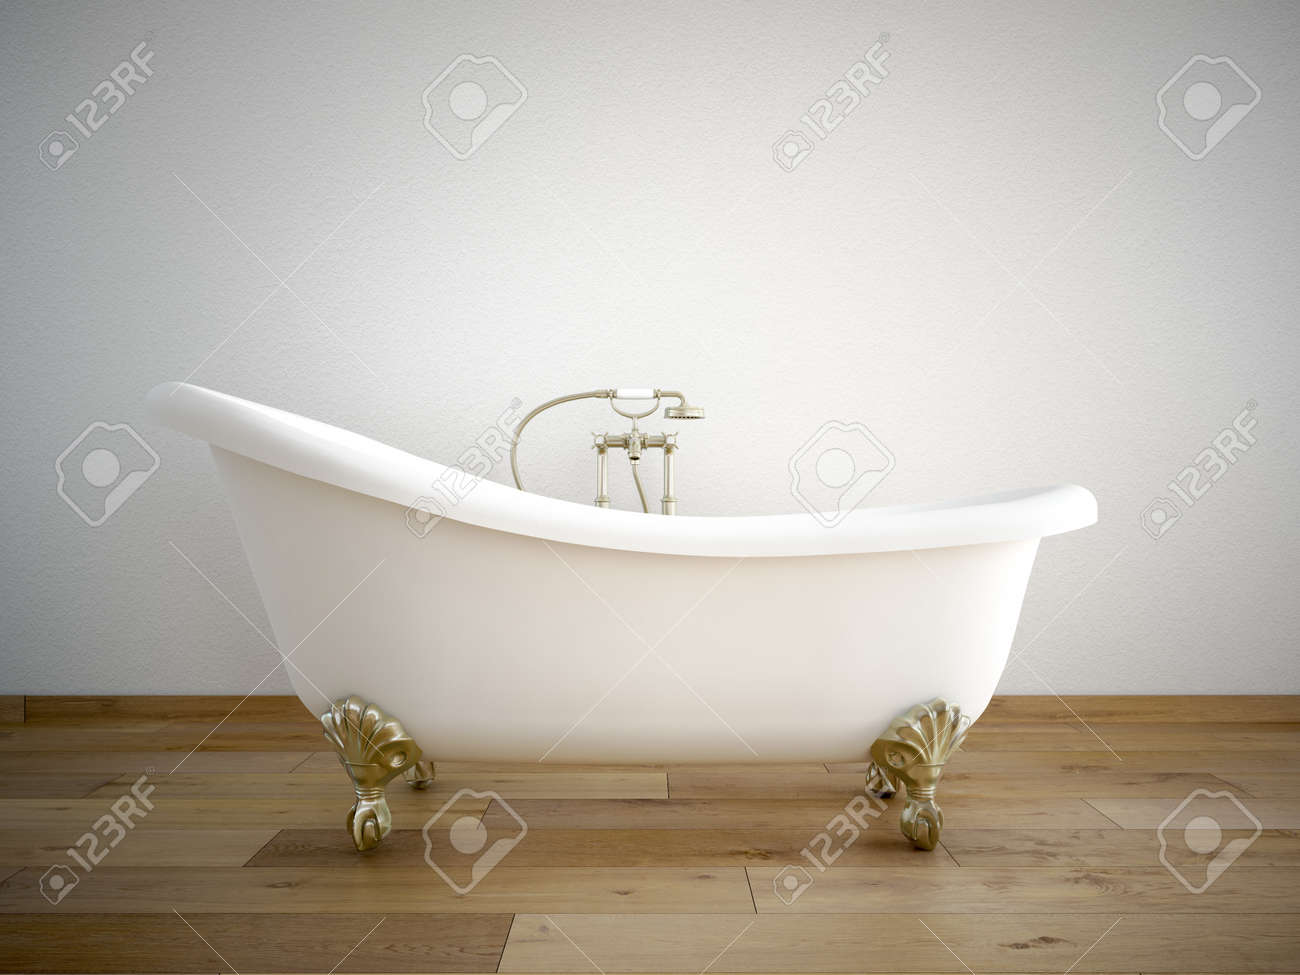 Vintage Bath Tube In A Room With A Color Wall Stock Photo, Picture ...